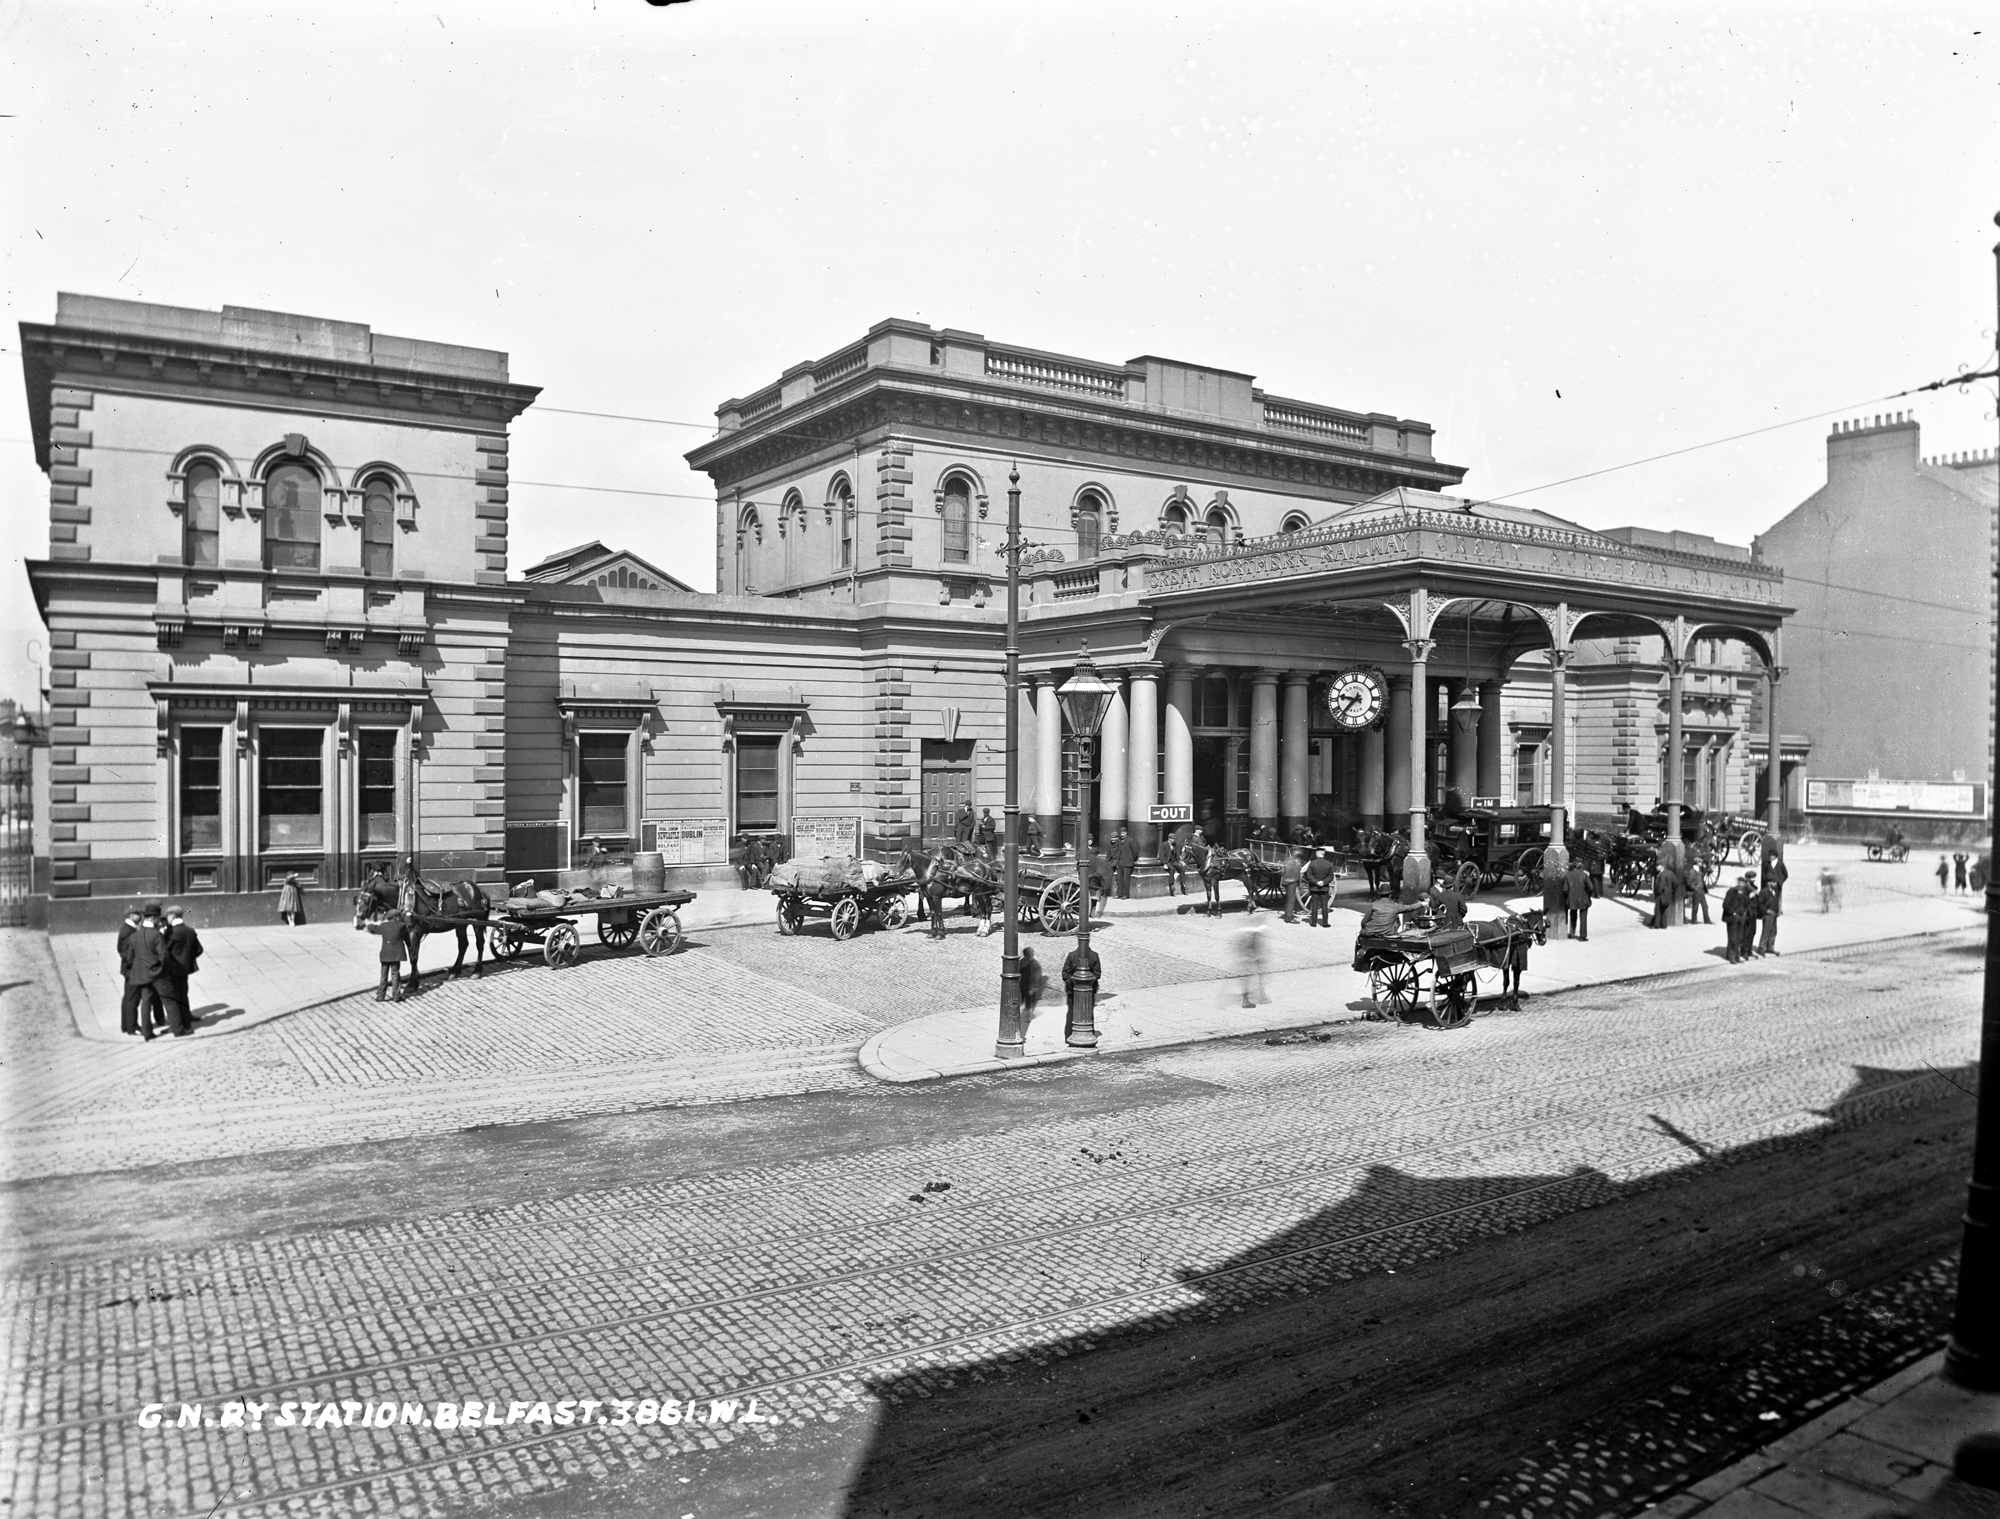 GNR [i.e. Great Northern Railway] Station, Belfast